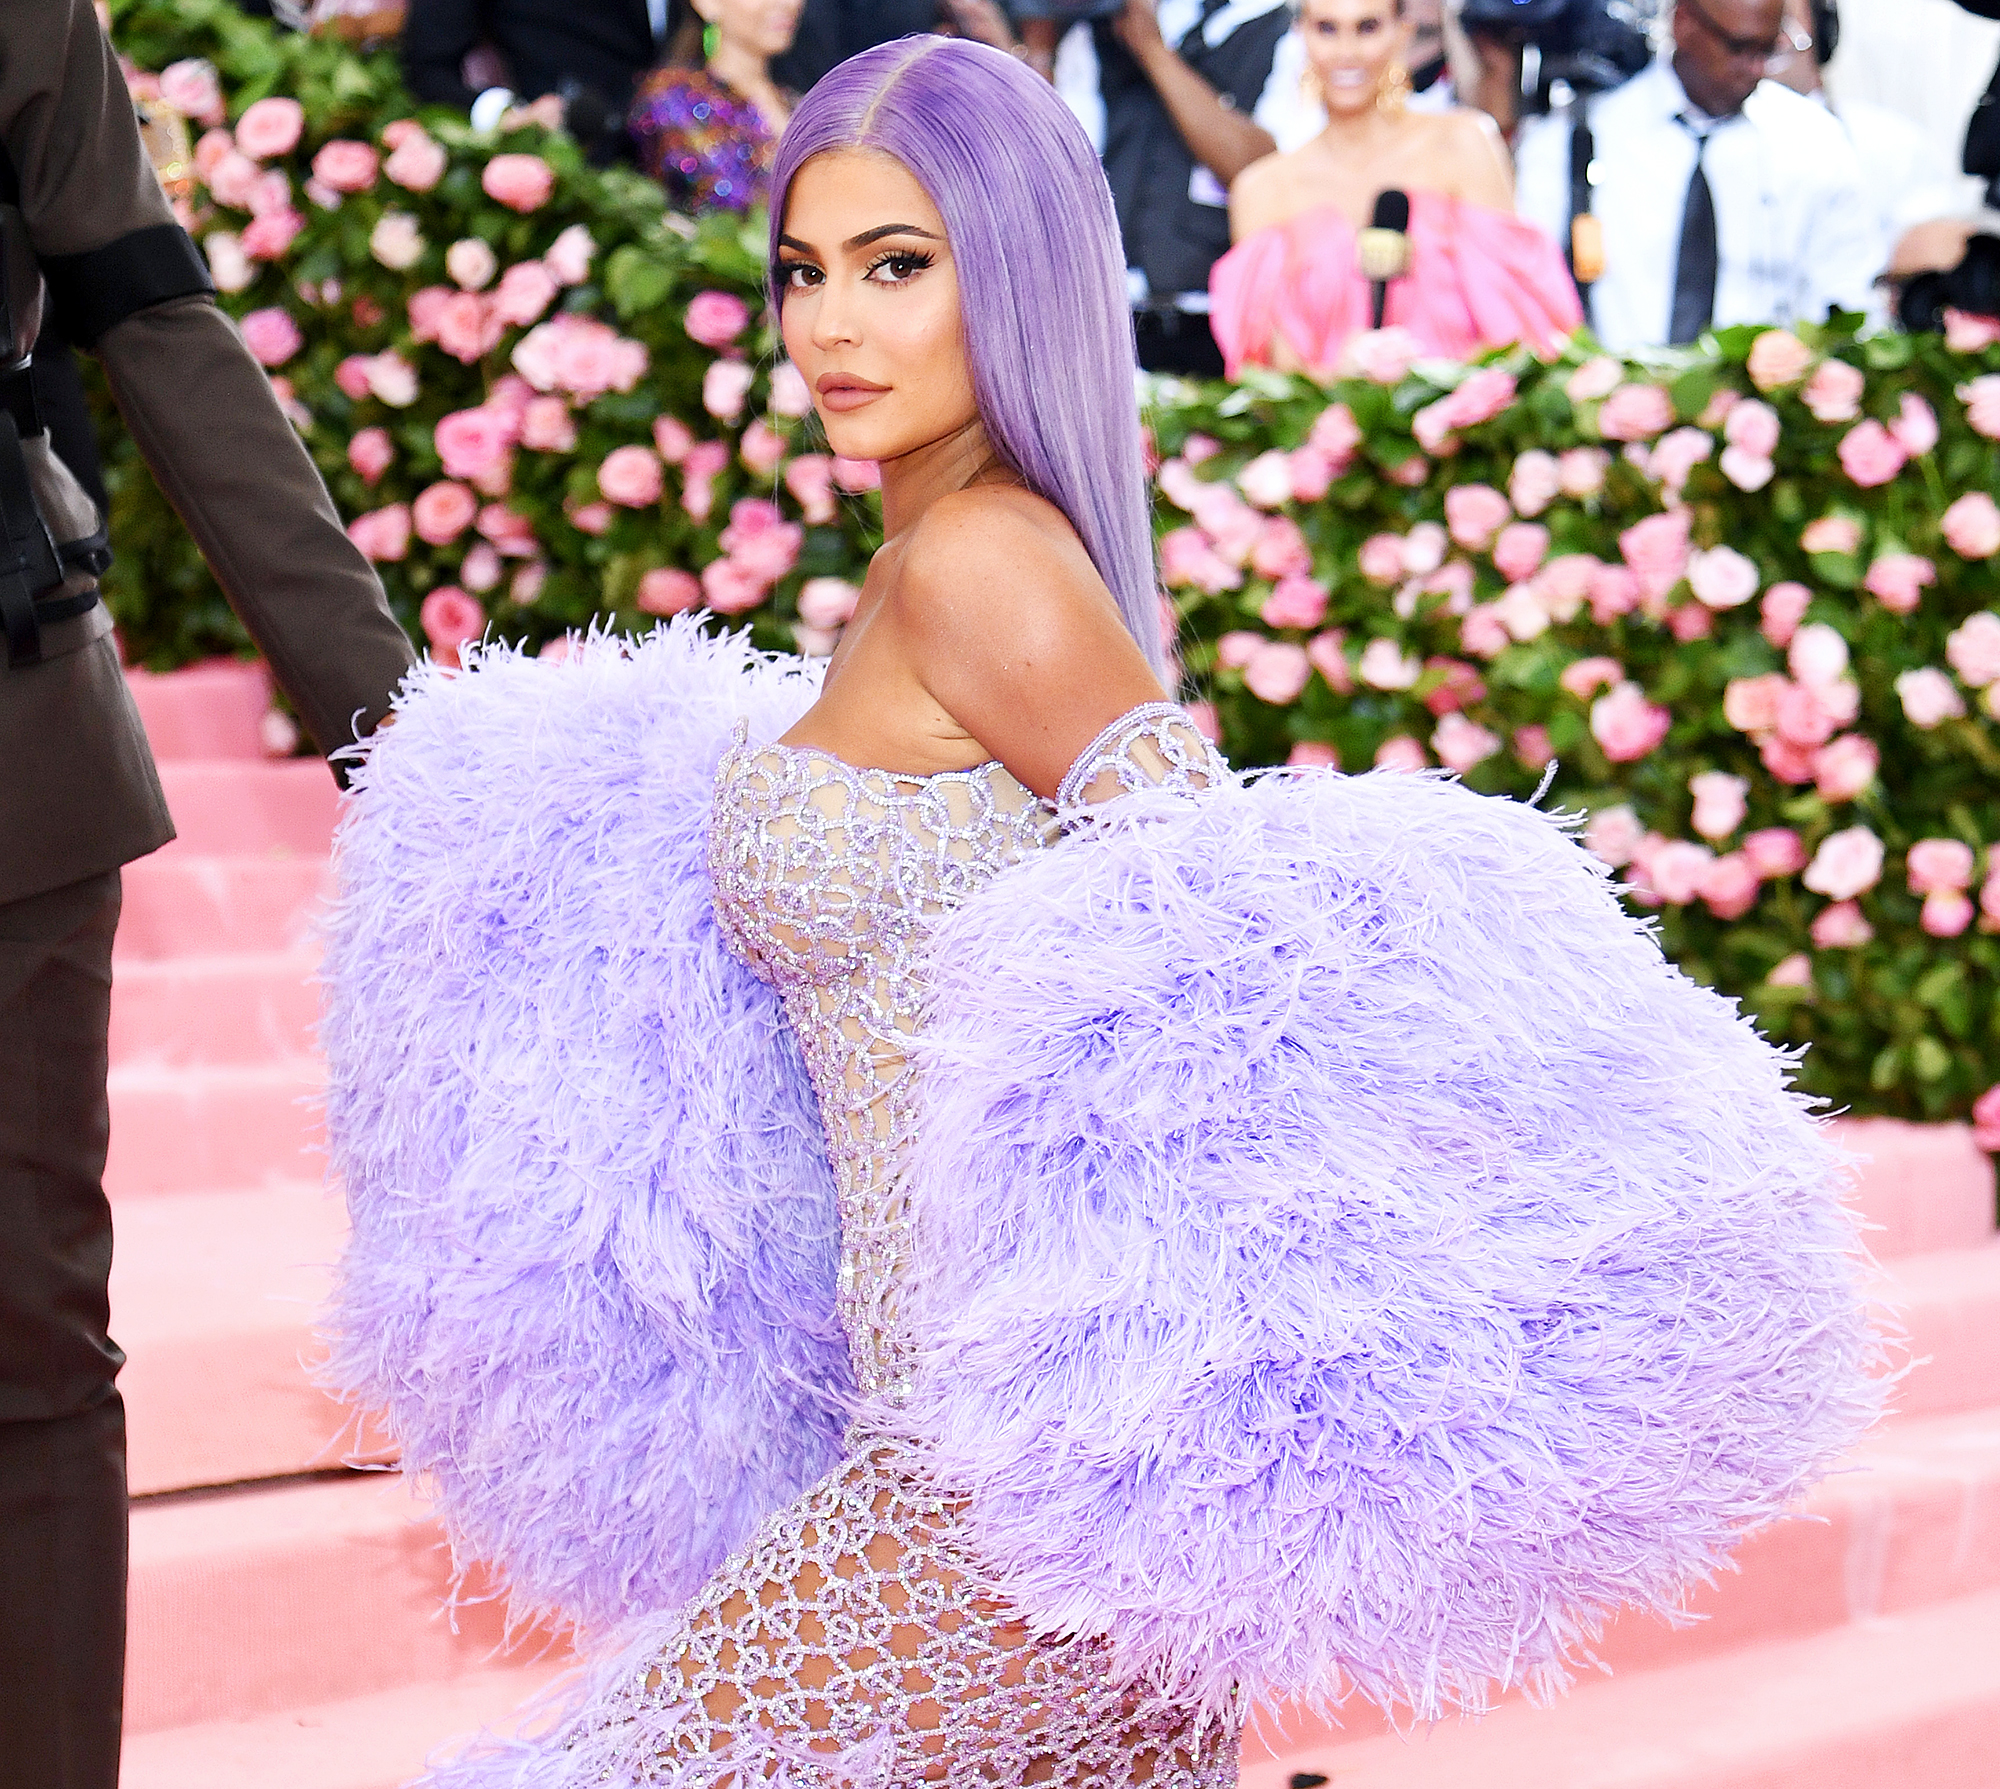 Kylie Jenner attends The Met Gala Celebrating Camp Fans Think Pregnancy Announcement in Khloe Kardashian Birthday Party Video